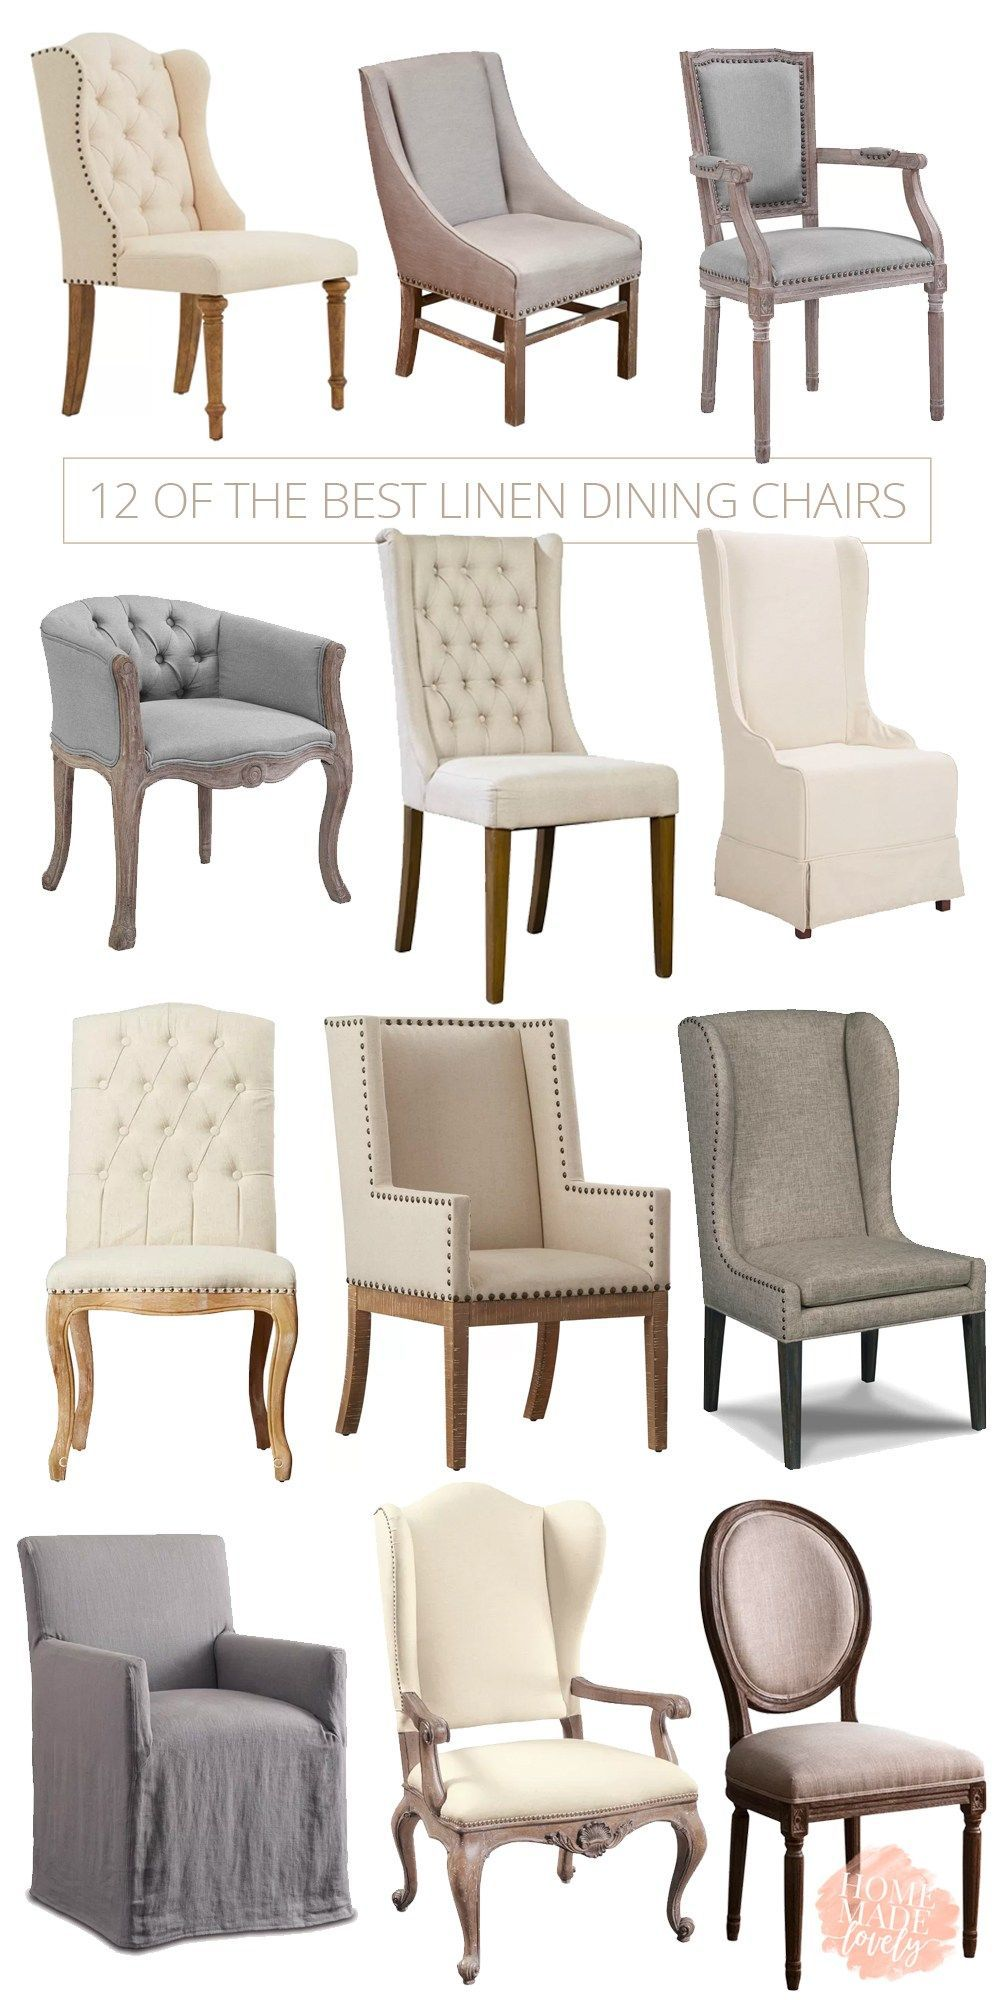 12 of The Best Linen Dining Chairs for Your Dining Room – pickndecor.com/furniture